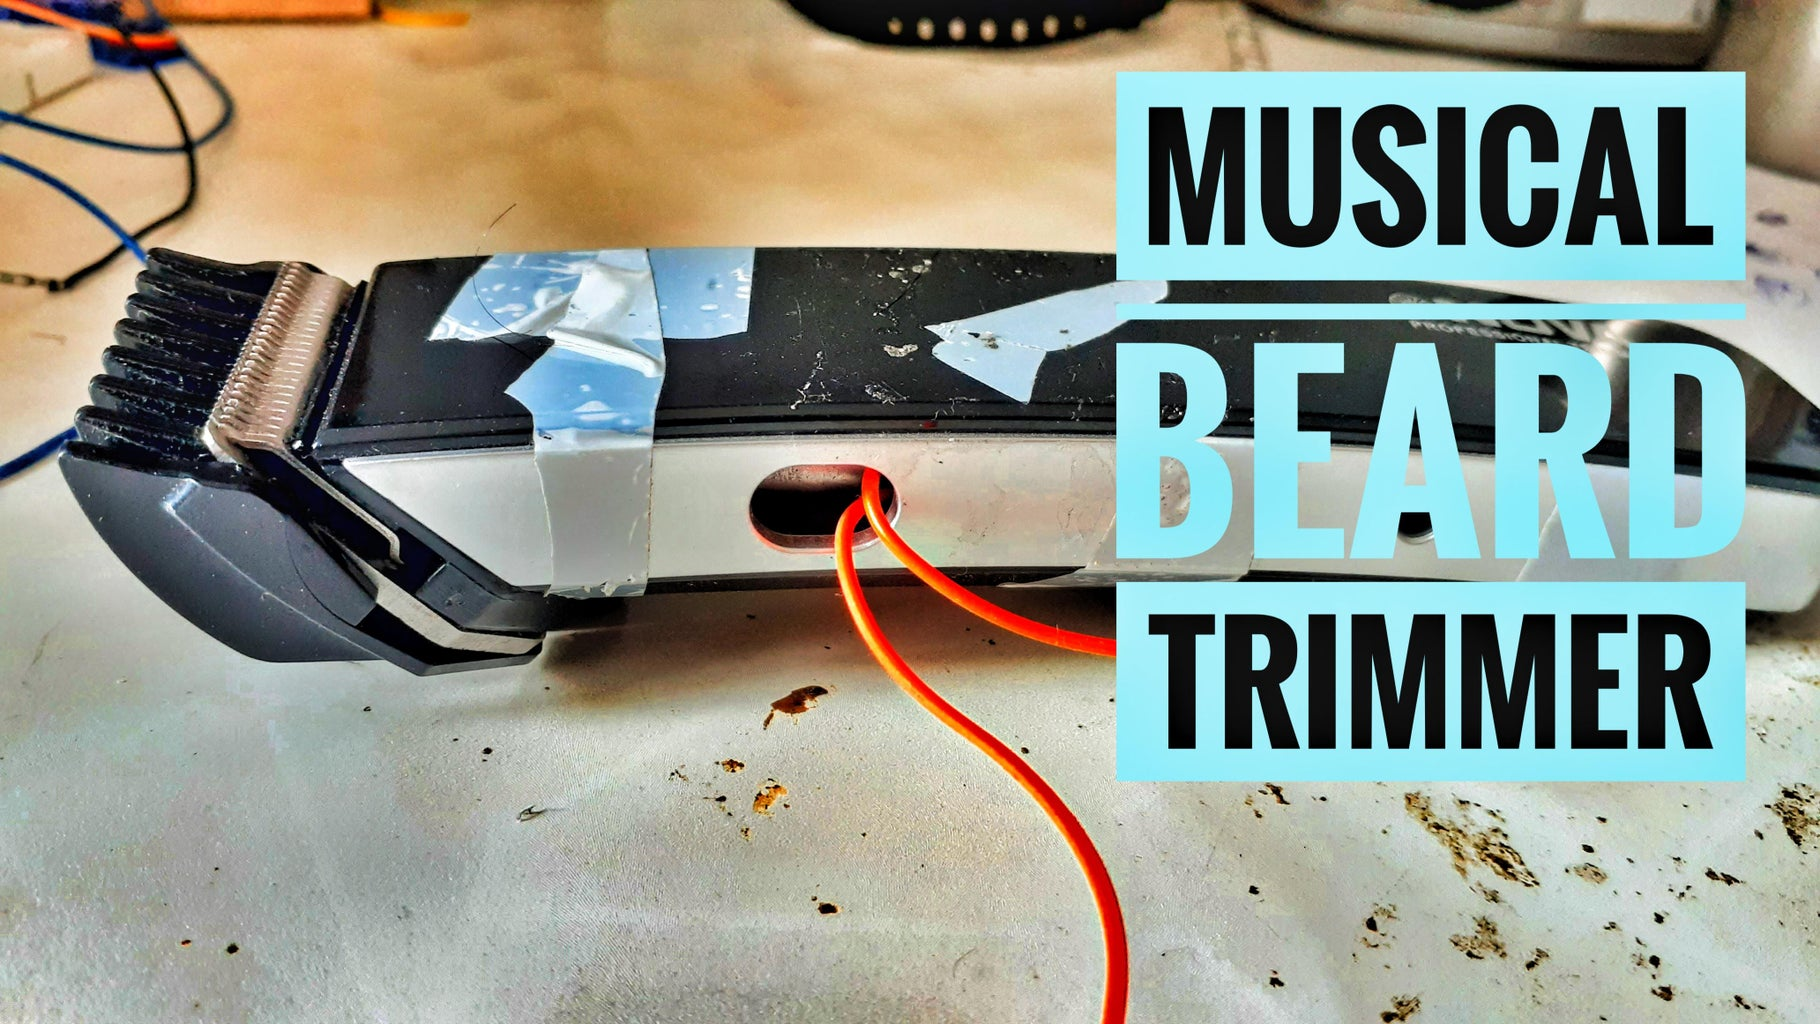 BEARD TRIMMER BECOMES a MUSIC PLAYER